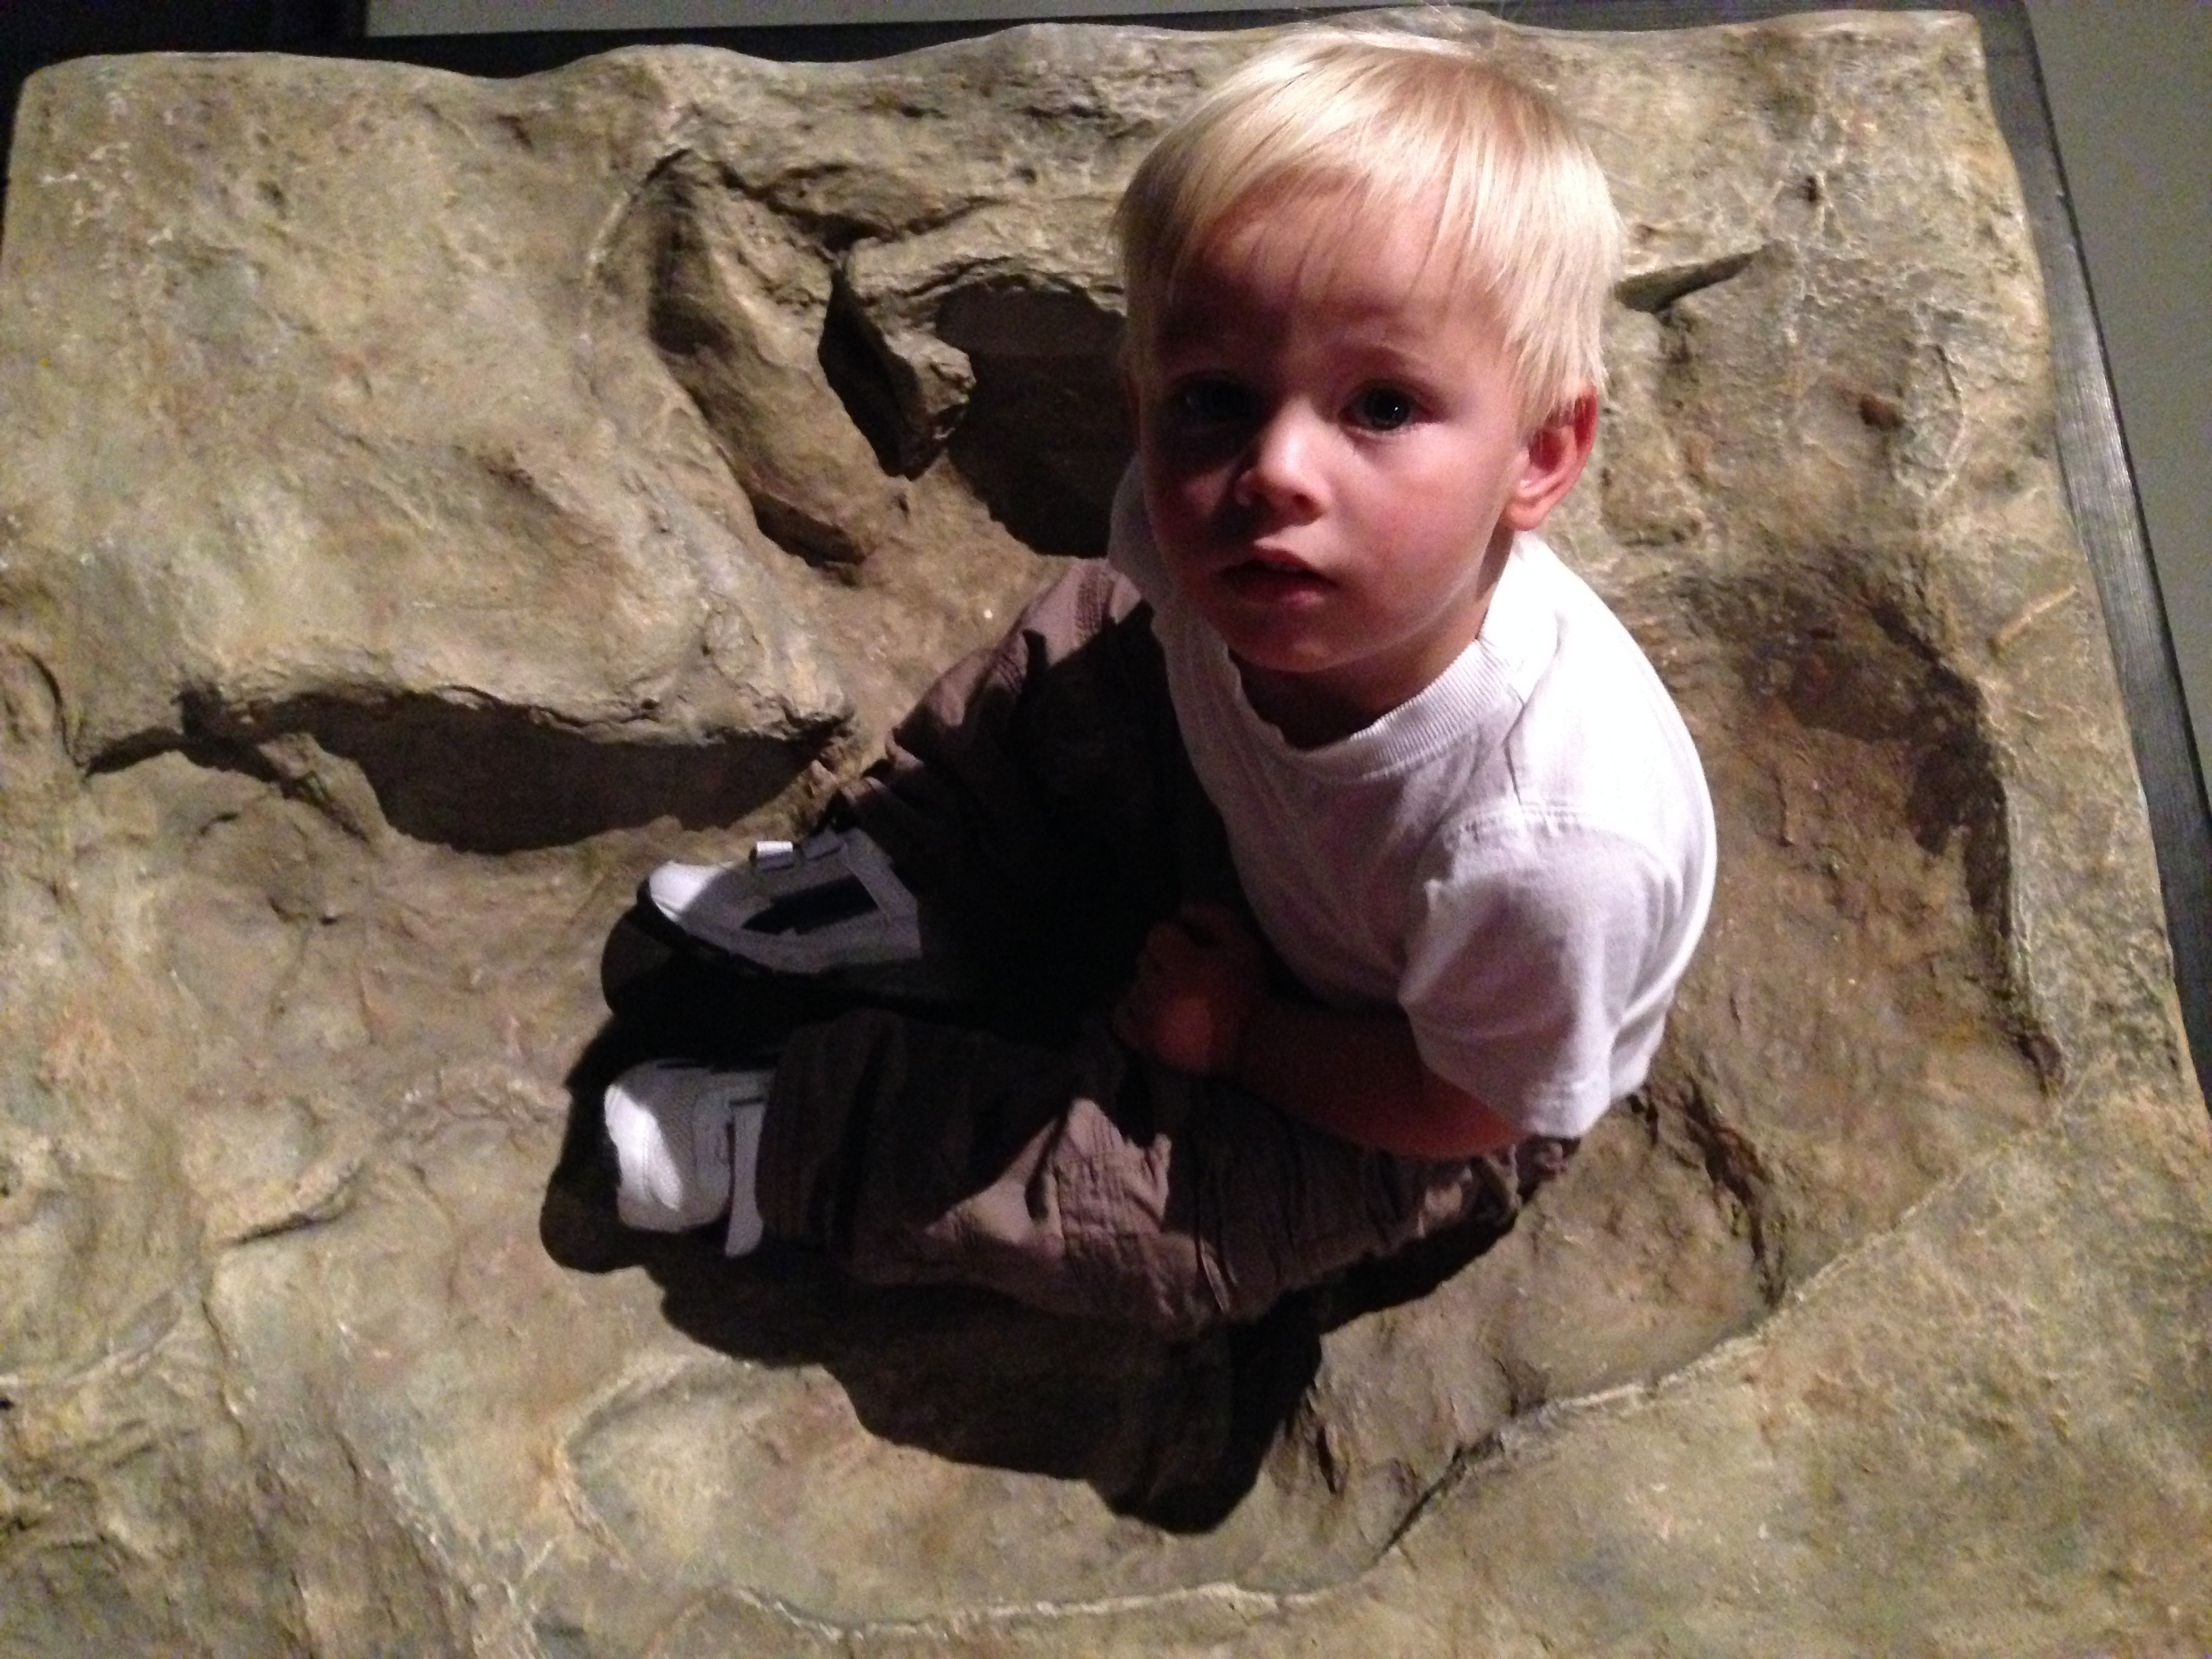 James inside a tyrannosaurus rex's footprint at Woodhorn colliery museum